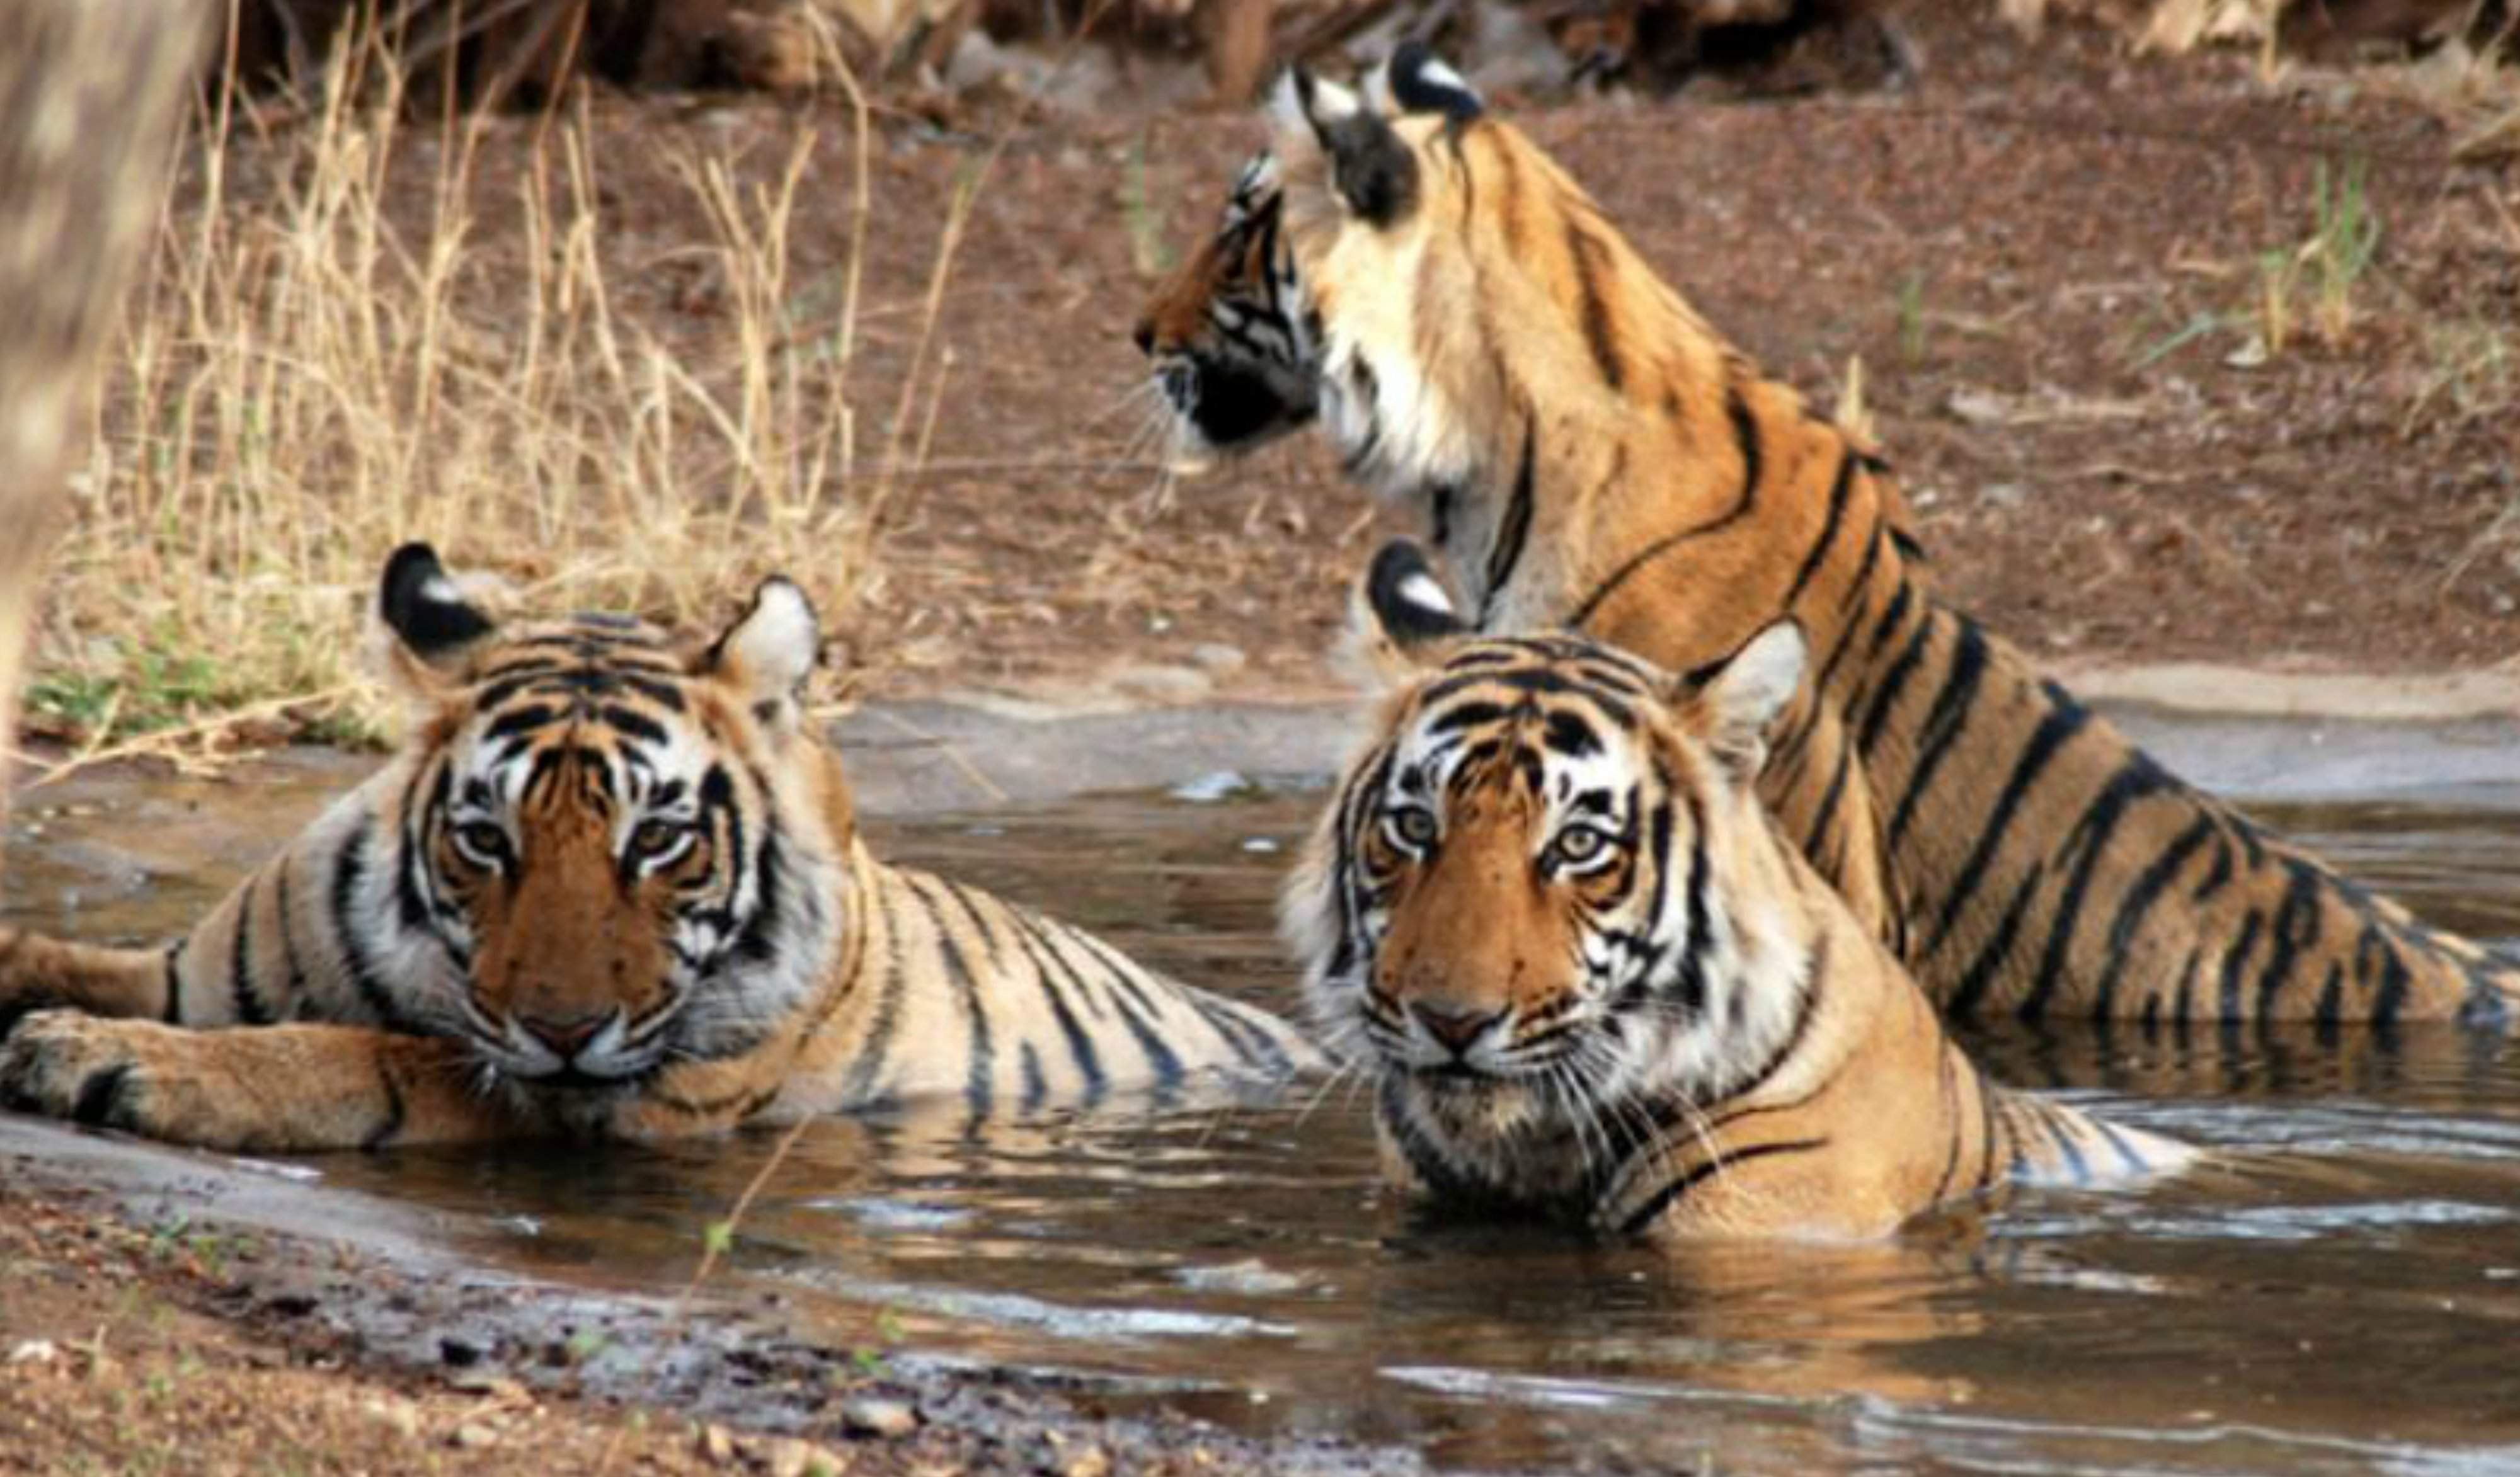 Nepal, India to conduct first joint tiger count